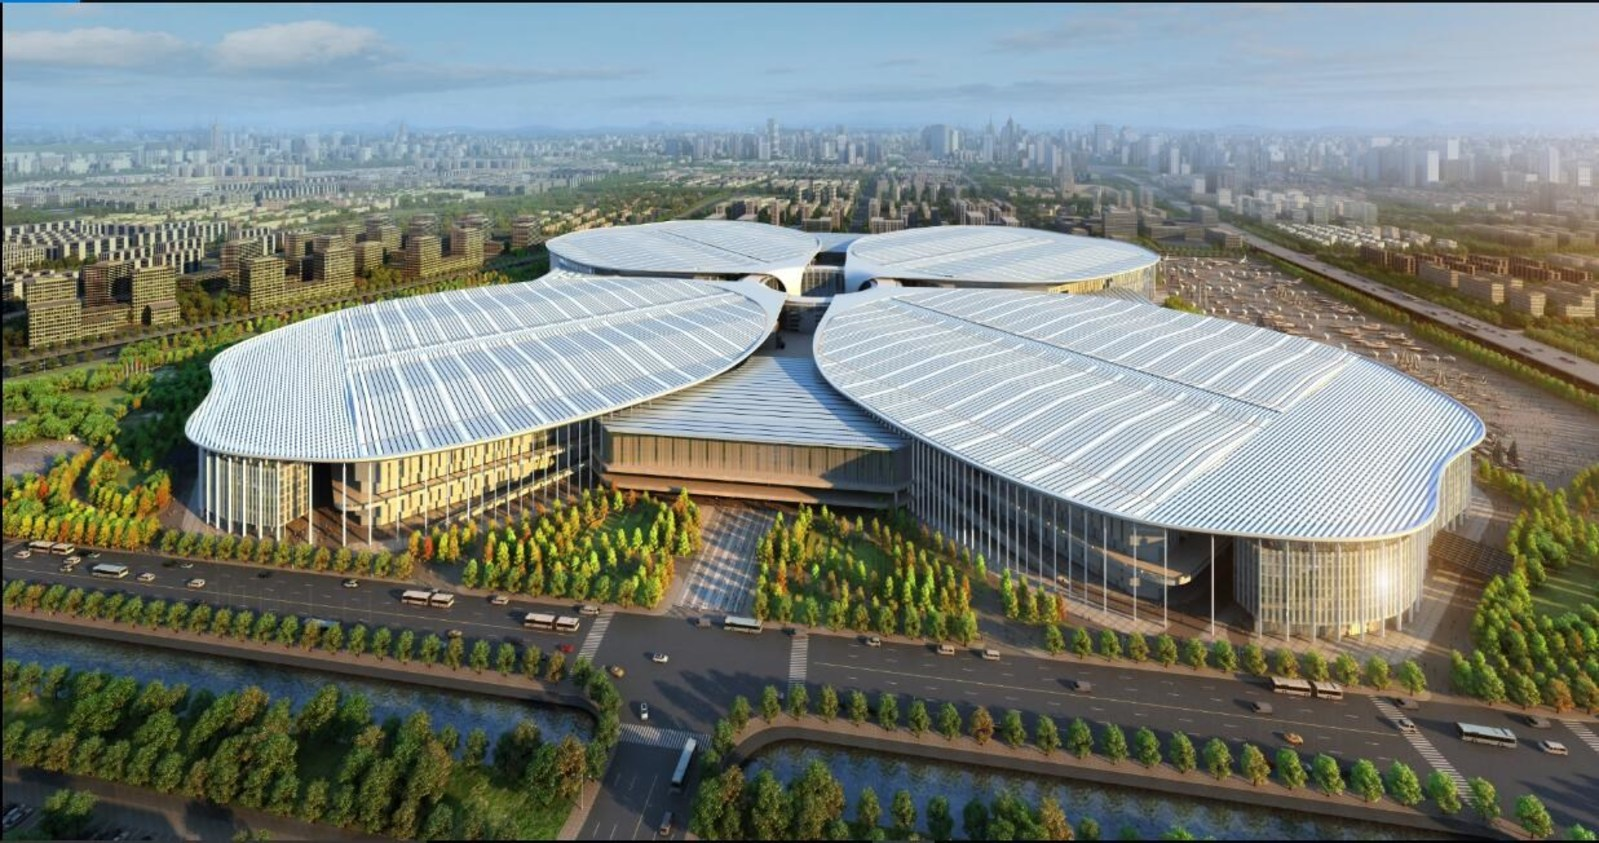 China International Import Expo To Debut In Shanghai, Helping Boost World Trade (PRNewsfoto/China International Import Expo)